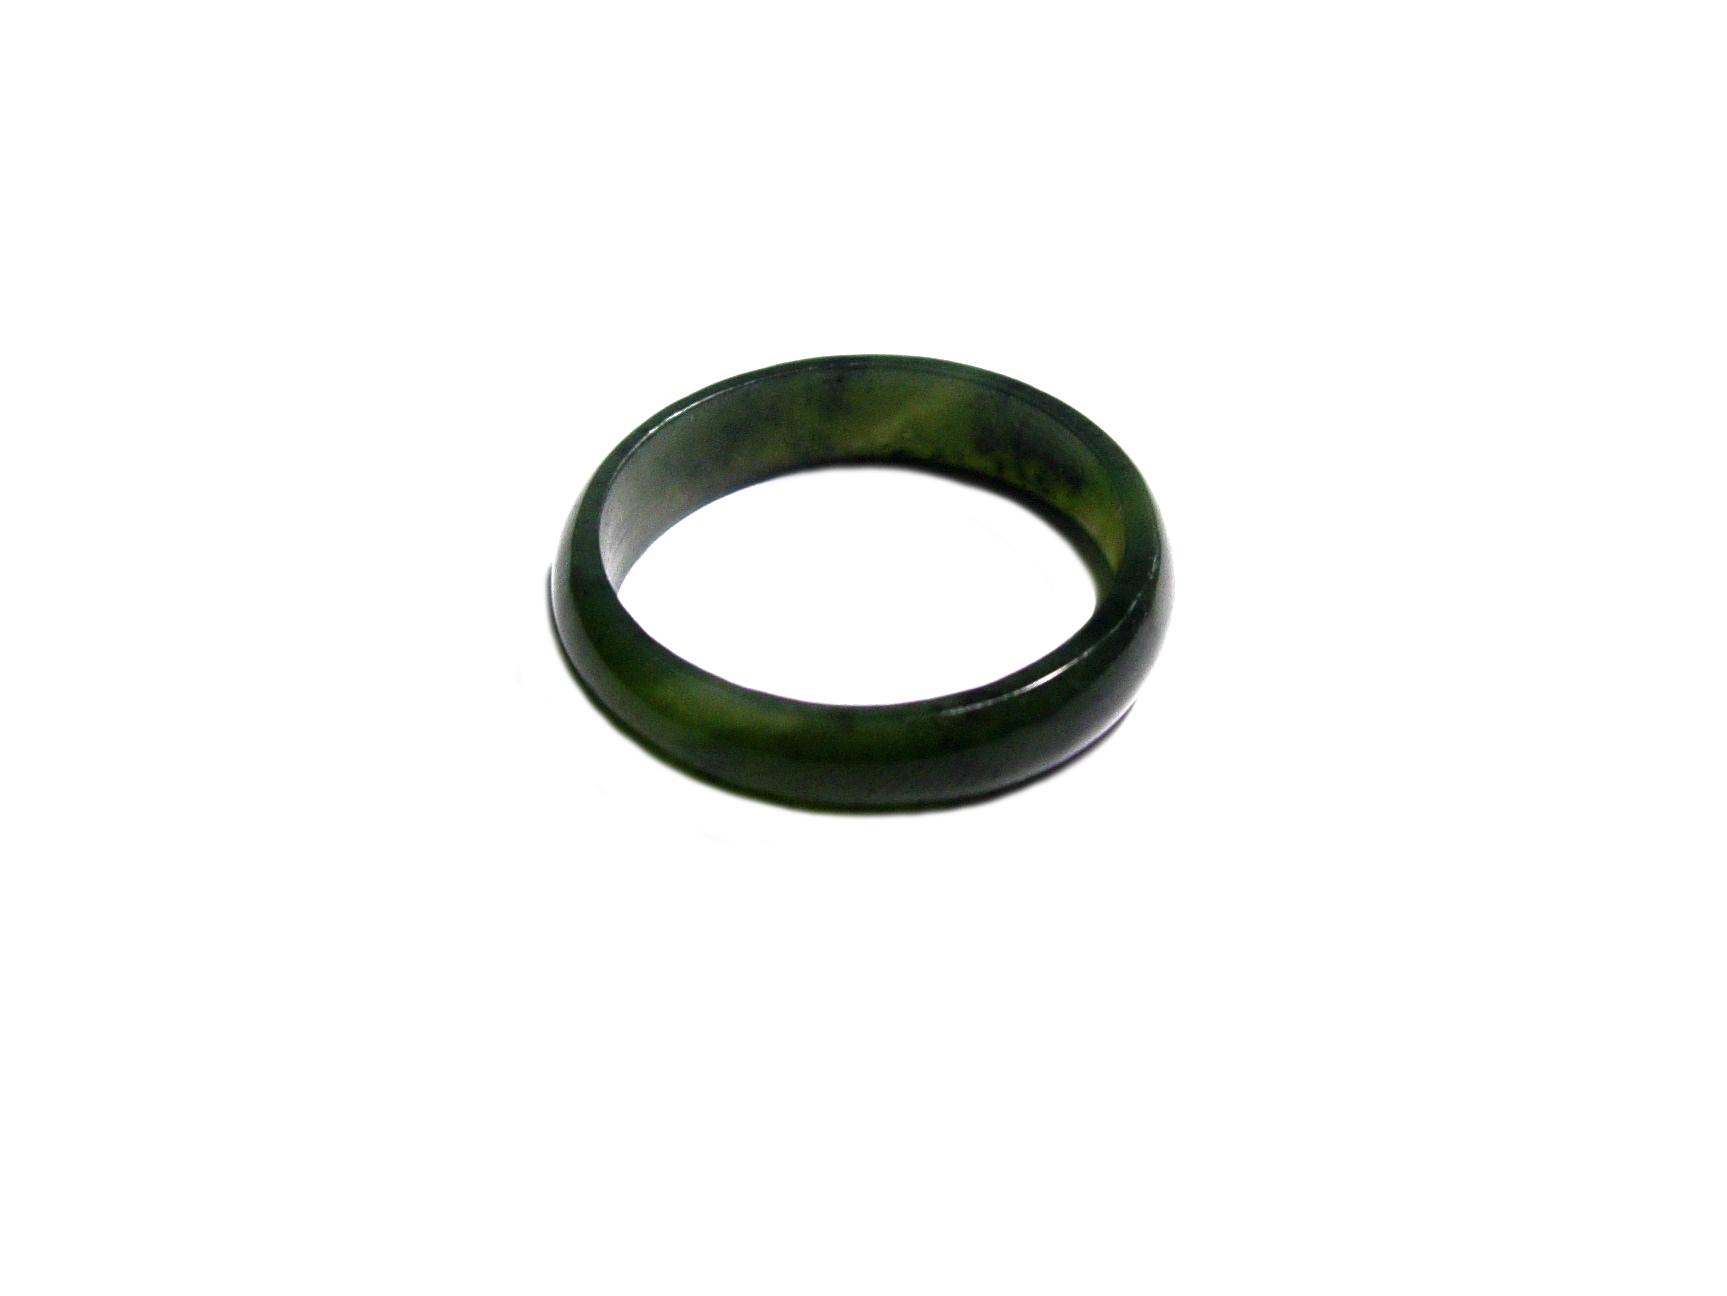 JADE 5MM BAND RING – SIZE US6 (16.51mm)